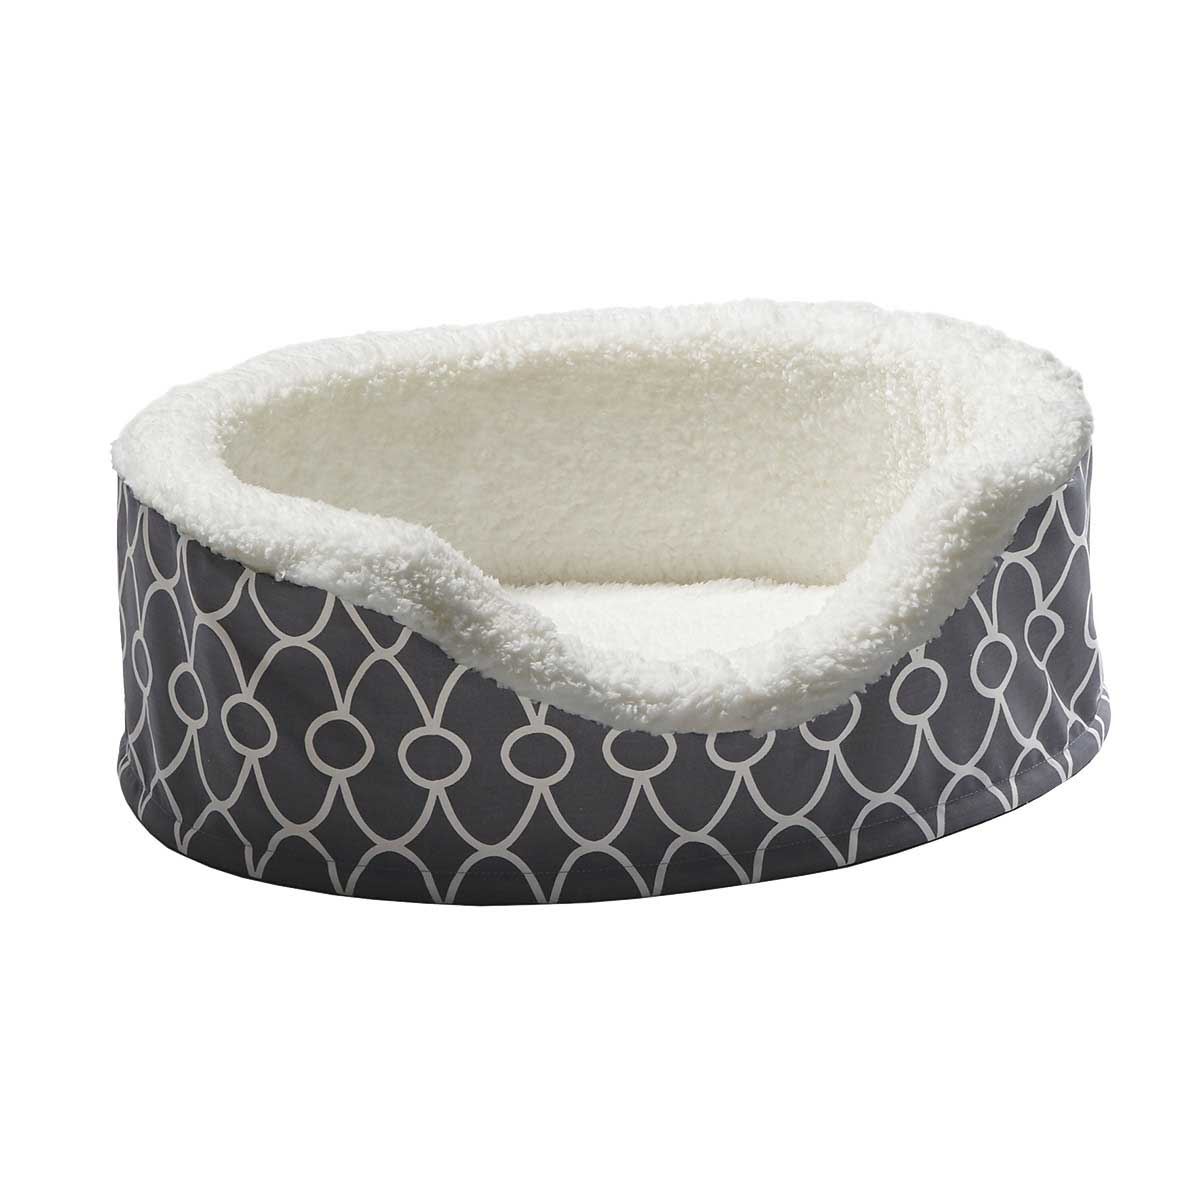 Teflon Gray Midwest Quiet Time Orthopedic Nesting Dog Bed - 23 inches by 18 inches